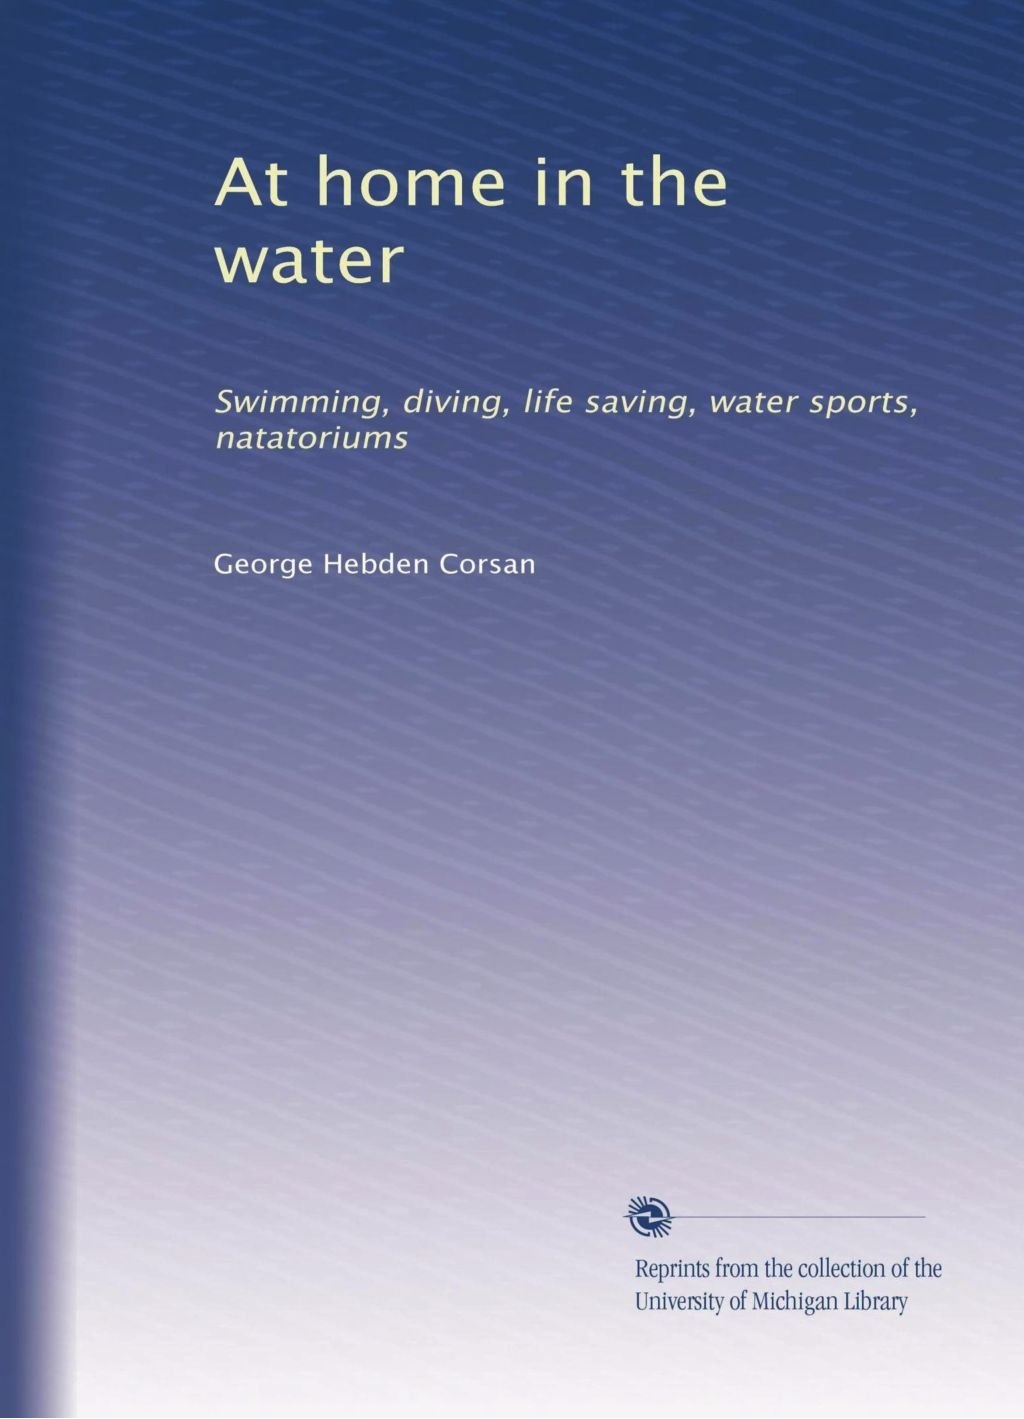 Download At home in the water: Swimming, diving, life saving, water sports, natatoriums pdf